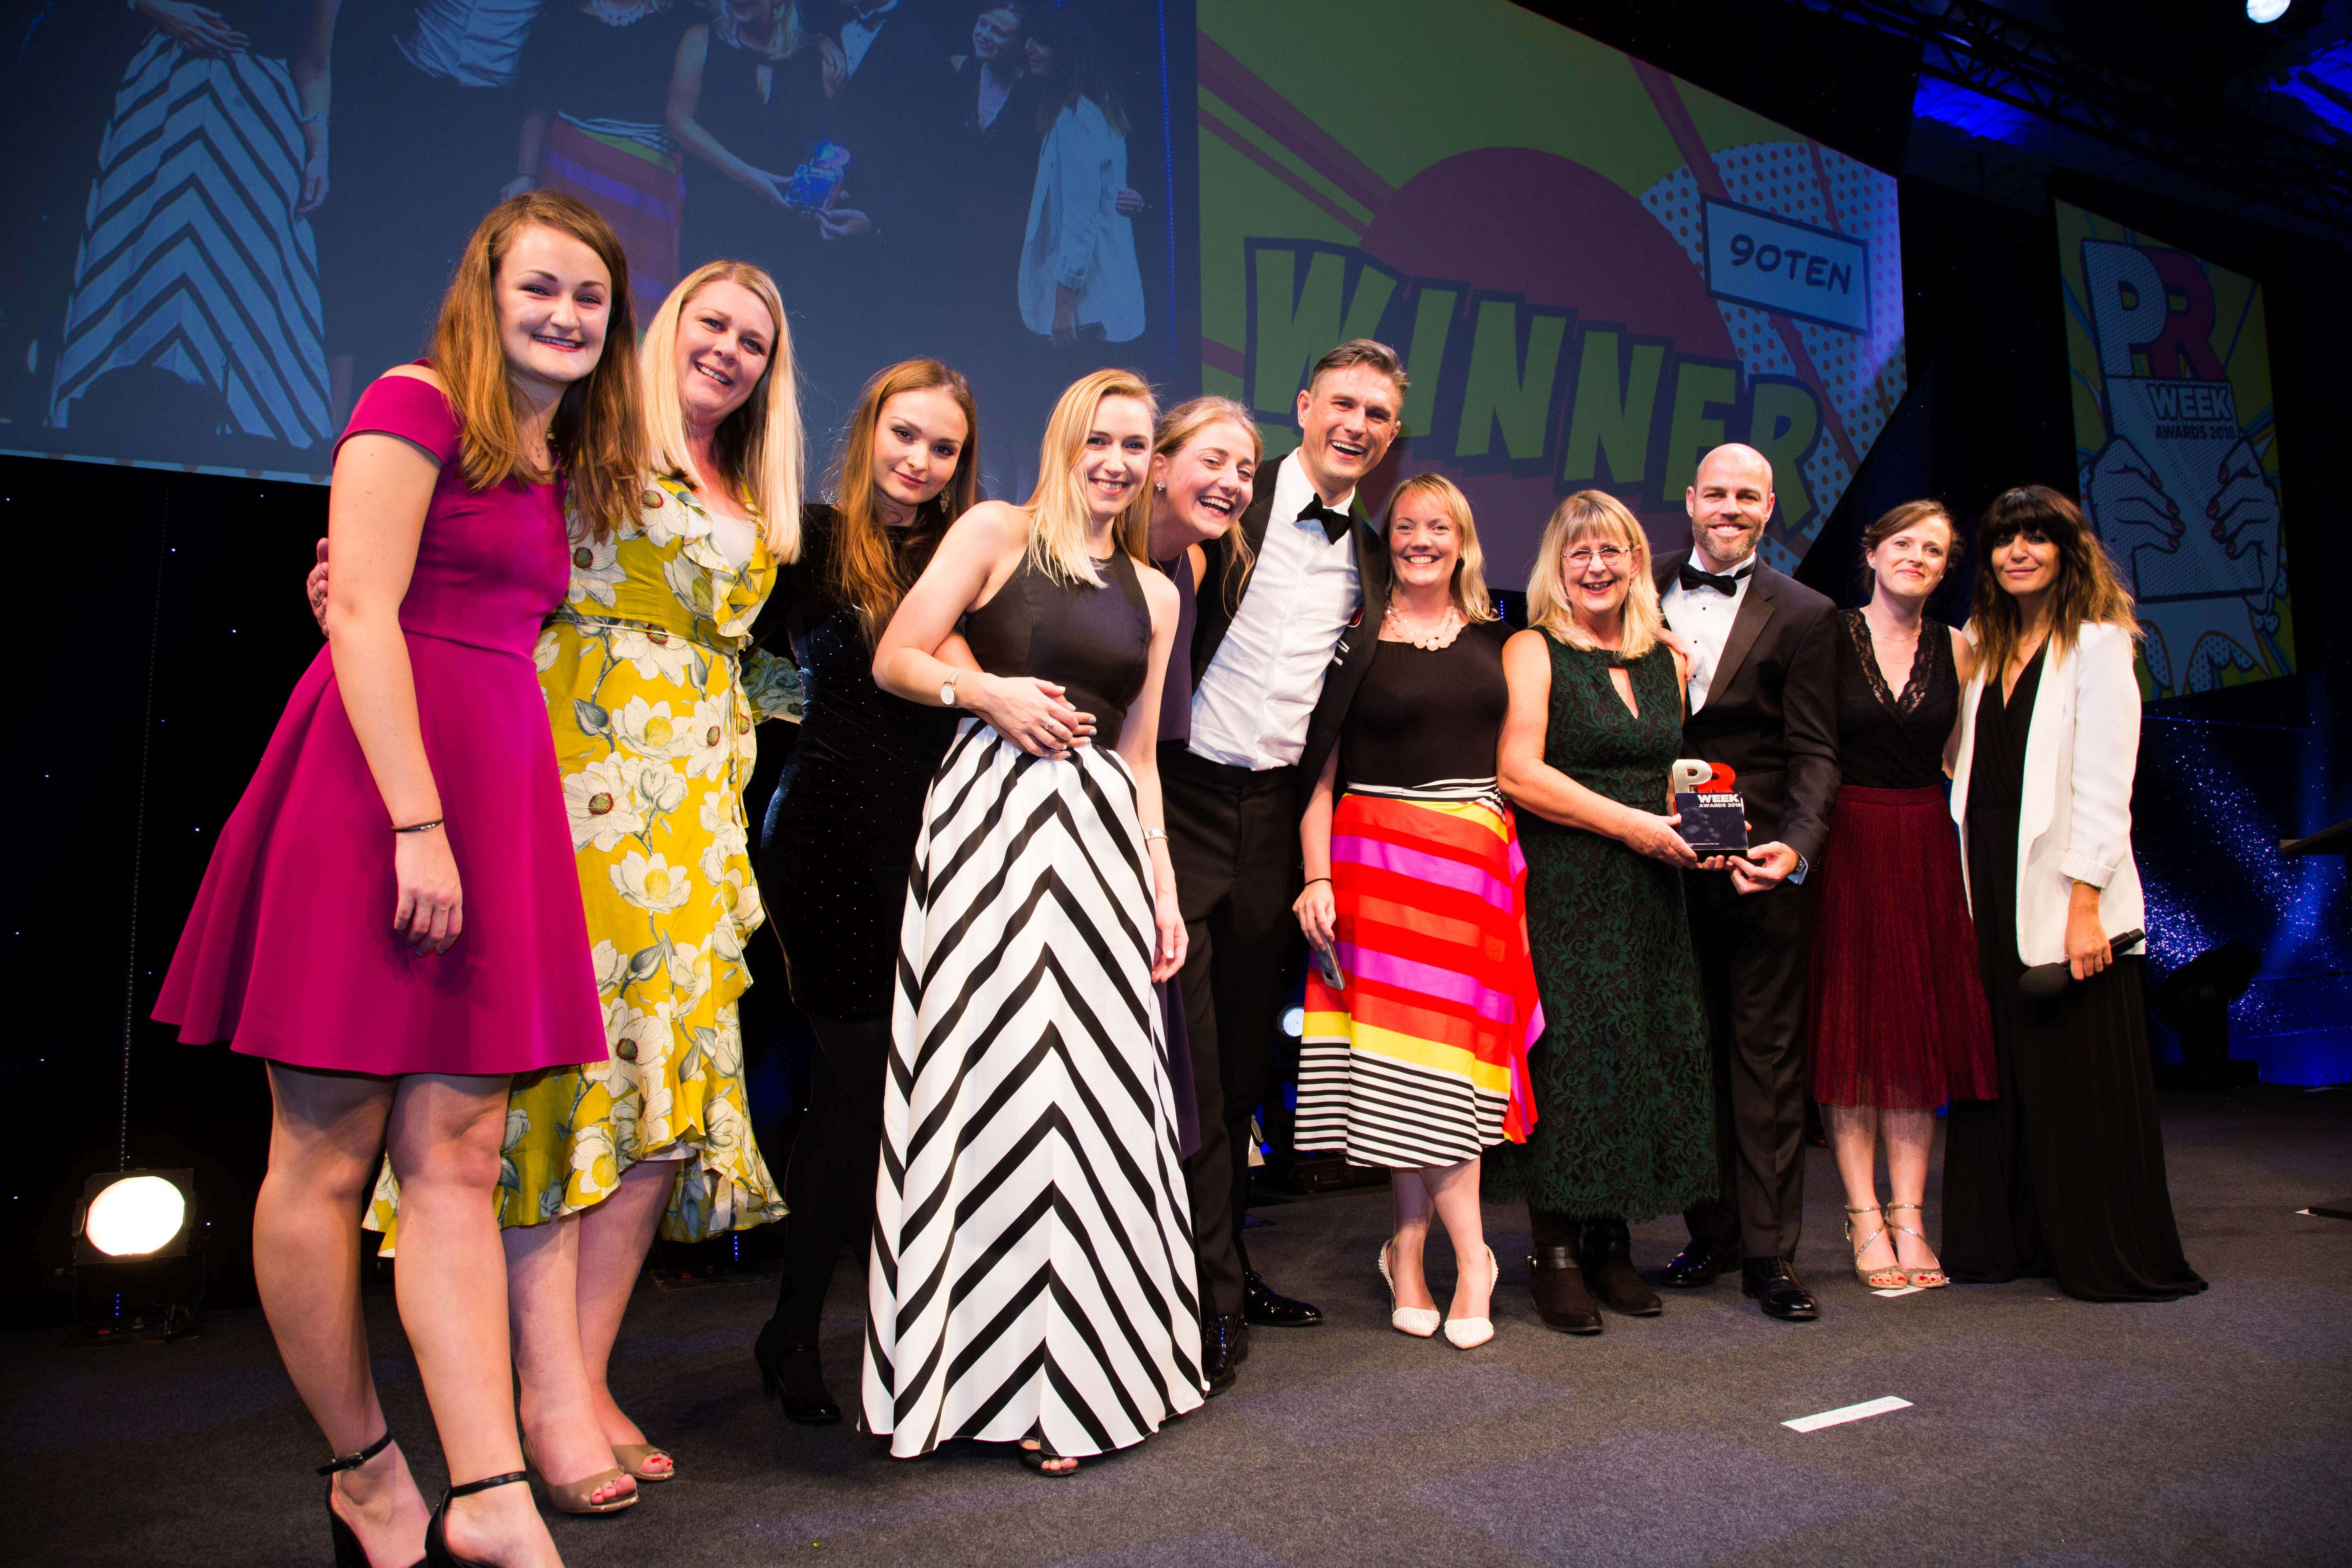 90TEN wins big at PRWeek Awards taking home six accolades including Mid-Sized and Specialist Consultancy of the Year